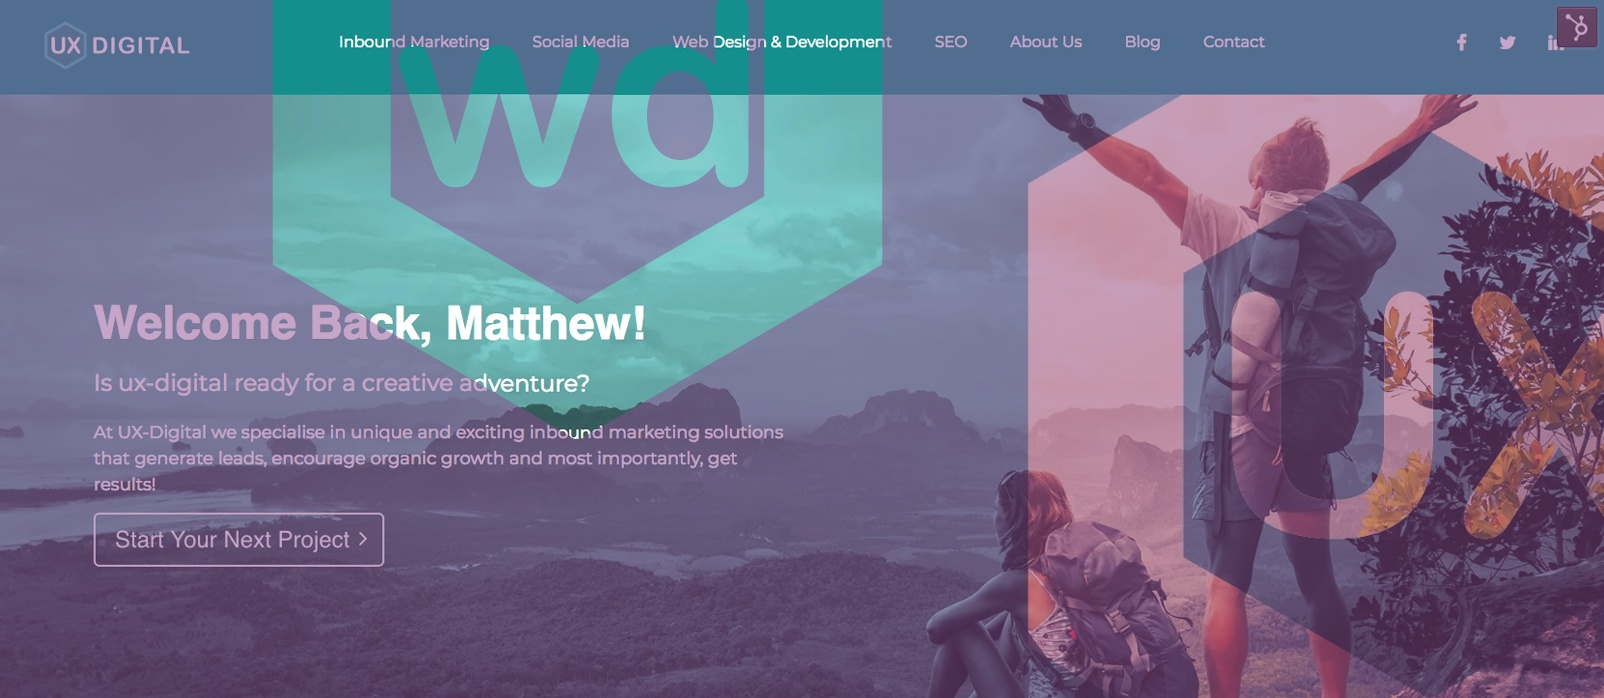 UX_website personalisation-featured